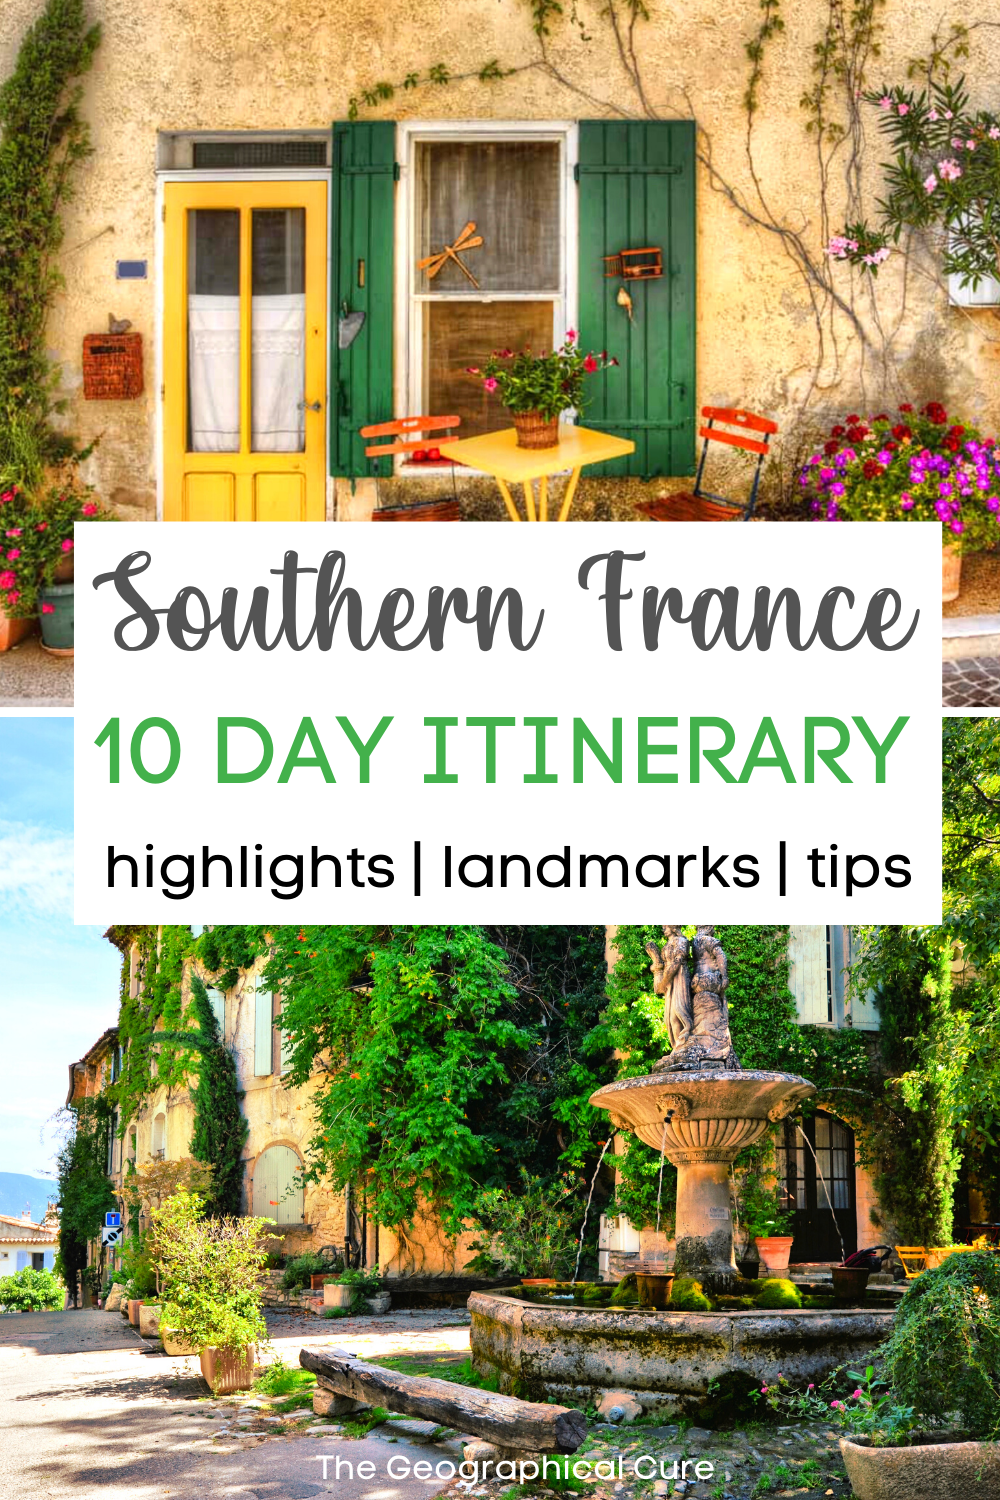 10 Day Itinerary for Southern France